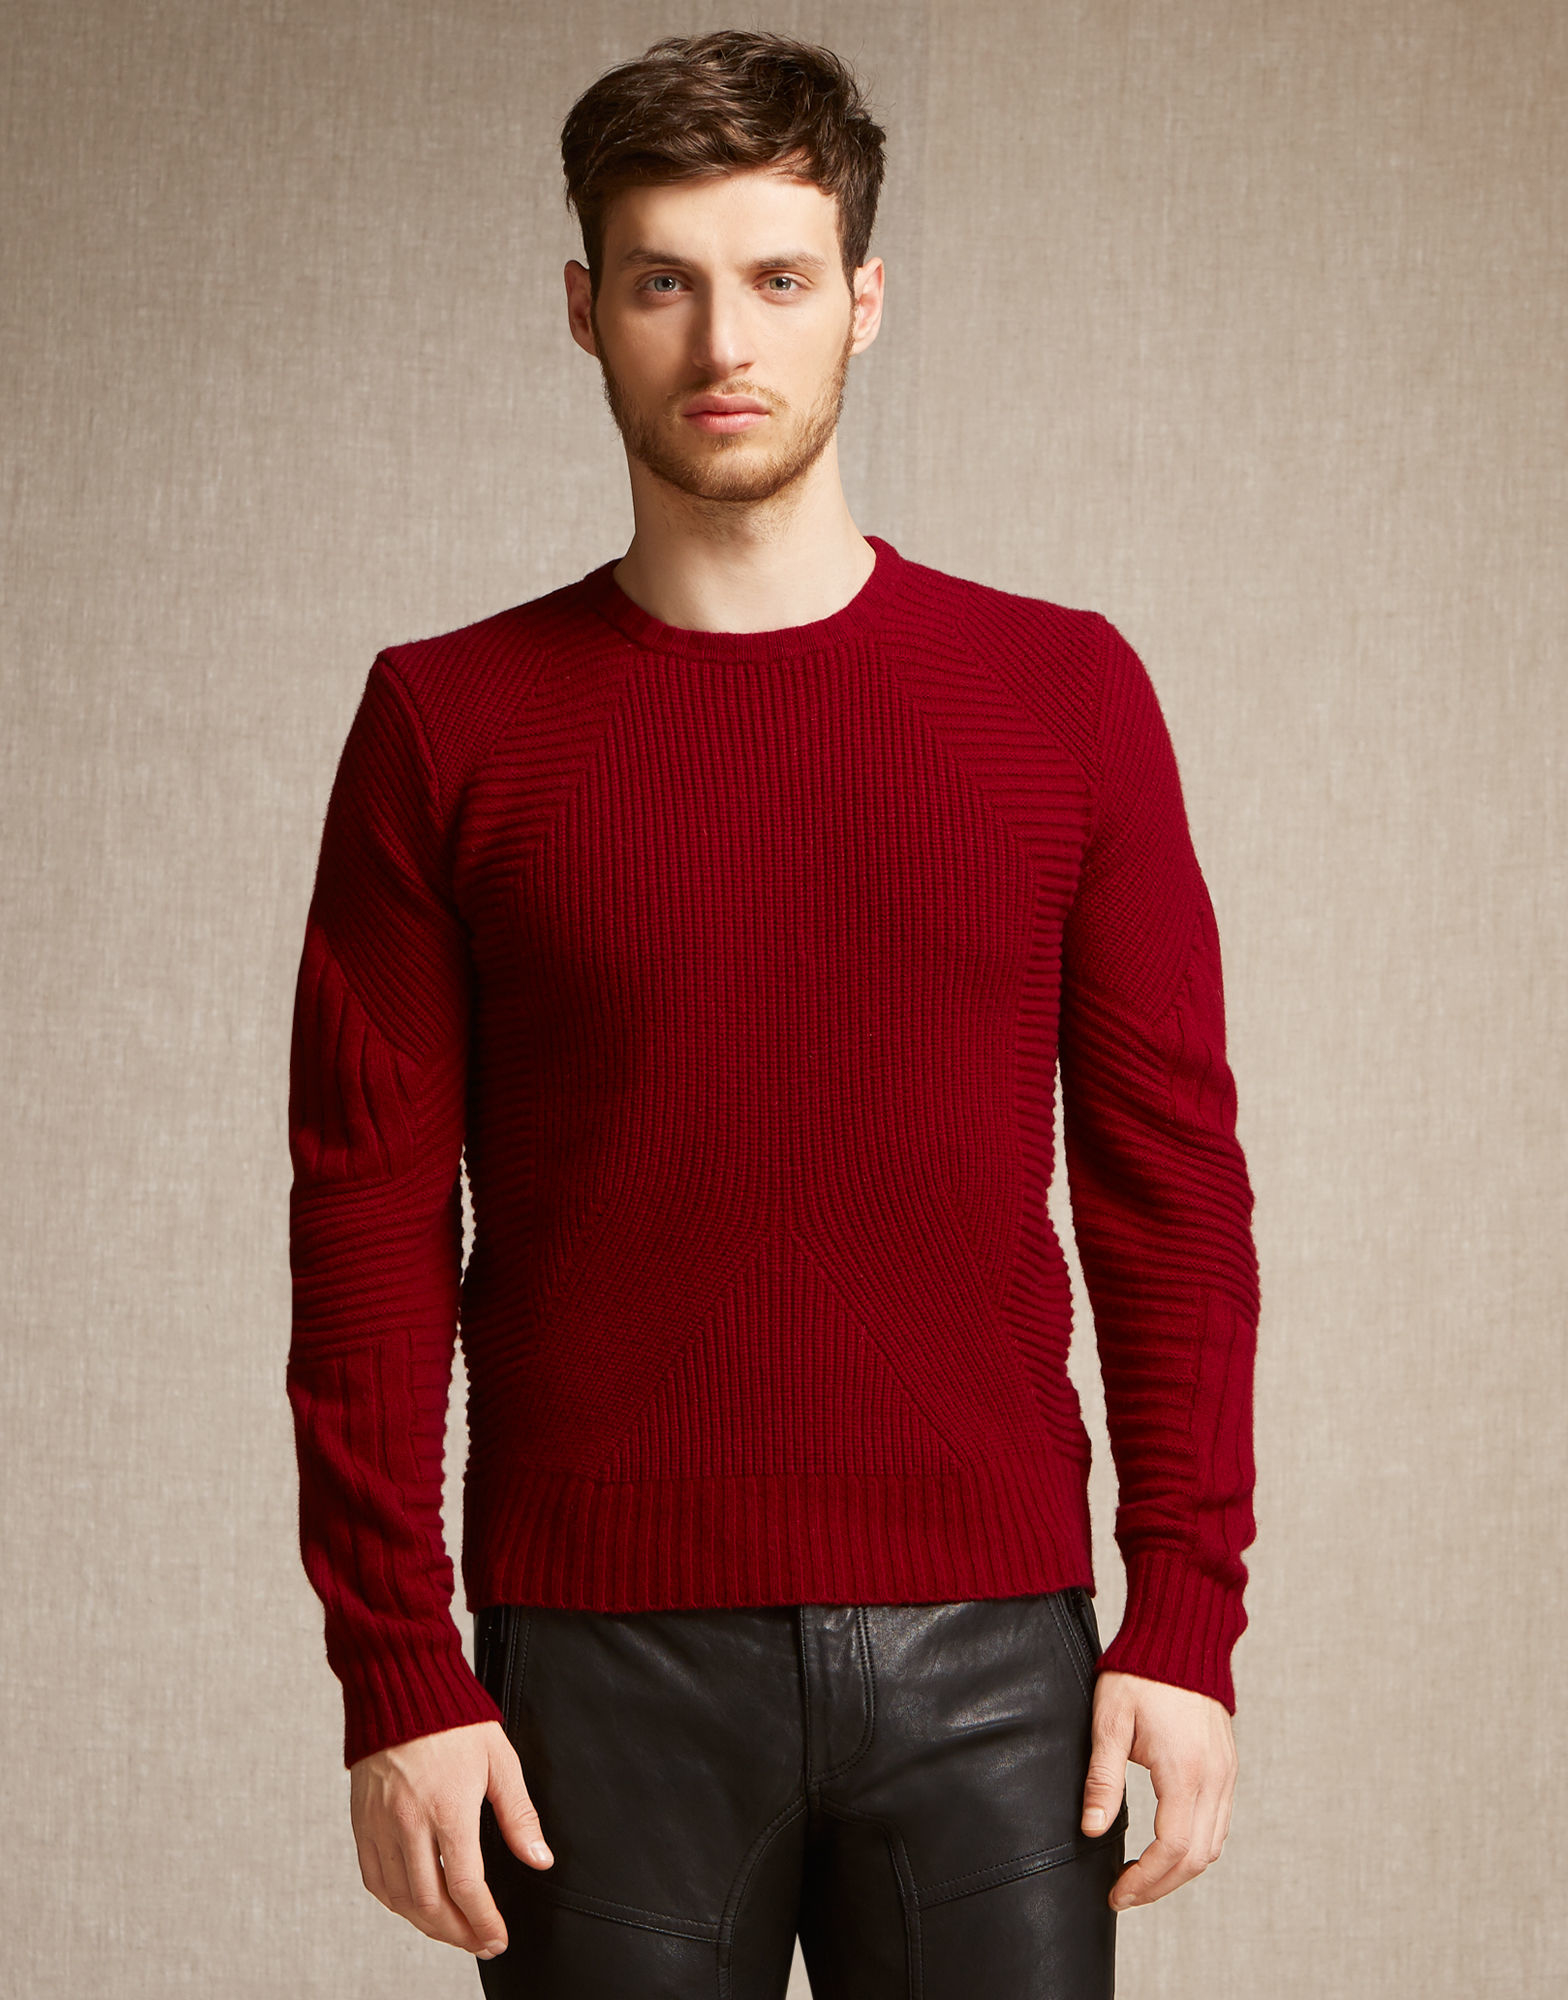 Belstaff Lincefield Jumper In Dark Red Cashmere Blend in Red for ...